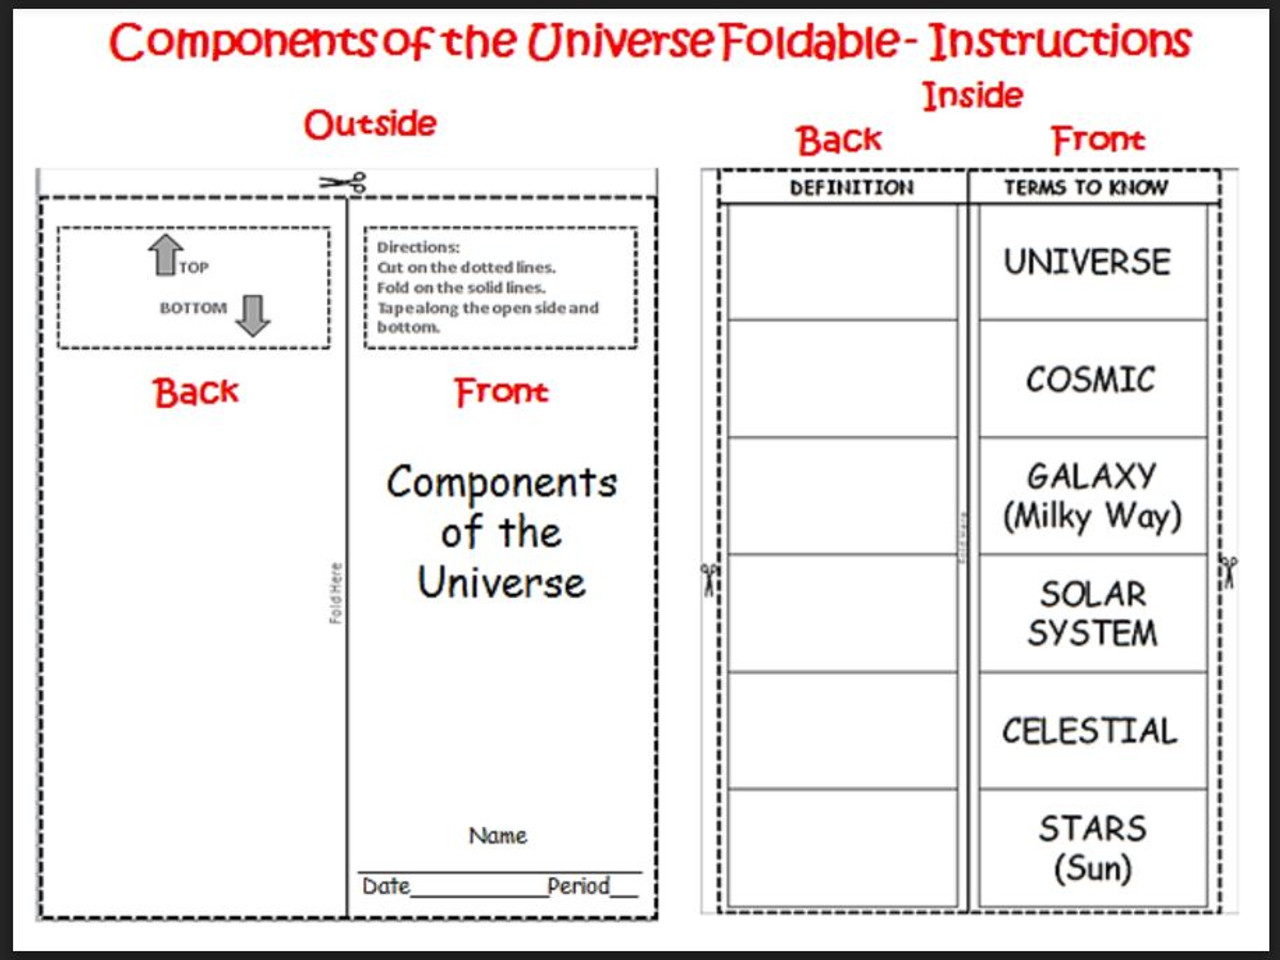 Components of the Universe - Scale and Size